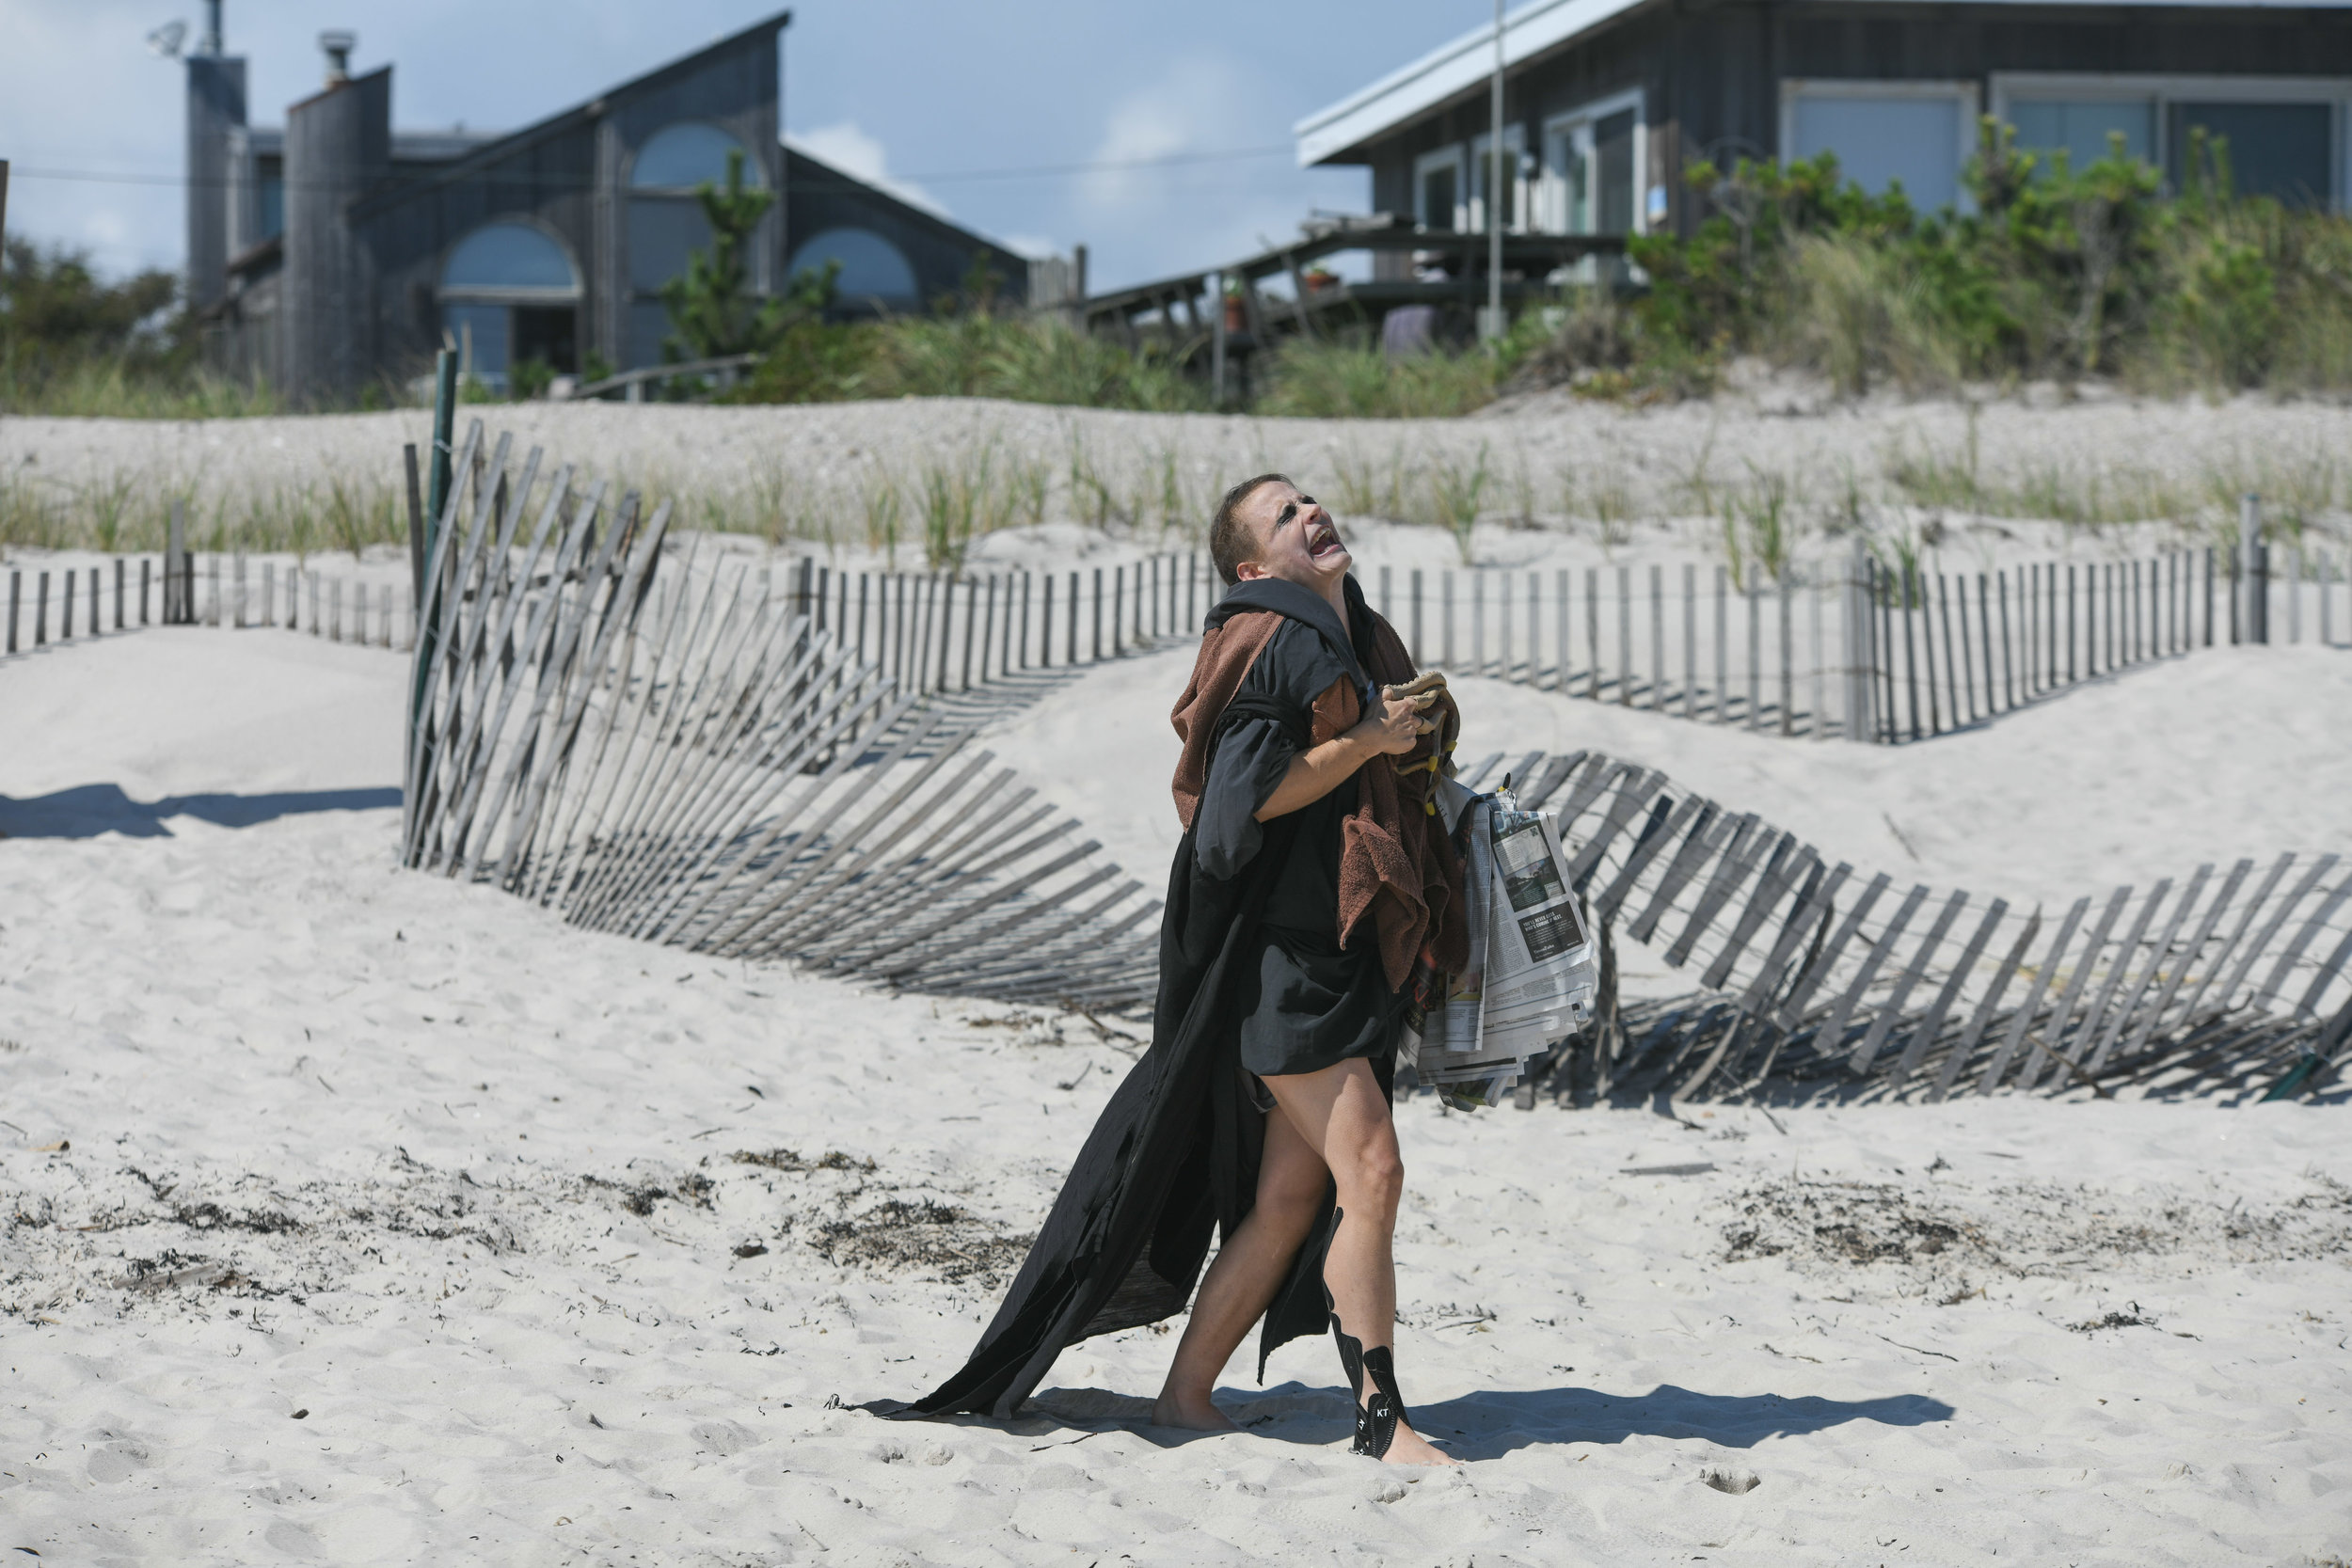 Nosferatu-On-The-Beach-3-Savannah-Knoop-Photo.jpg